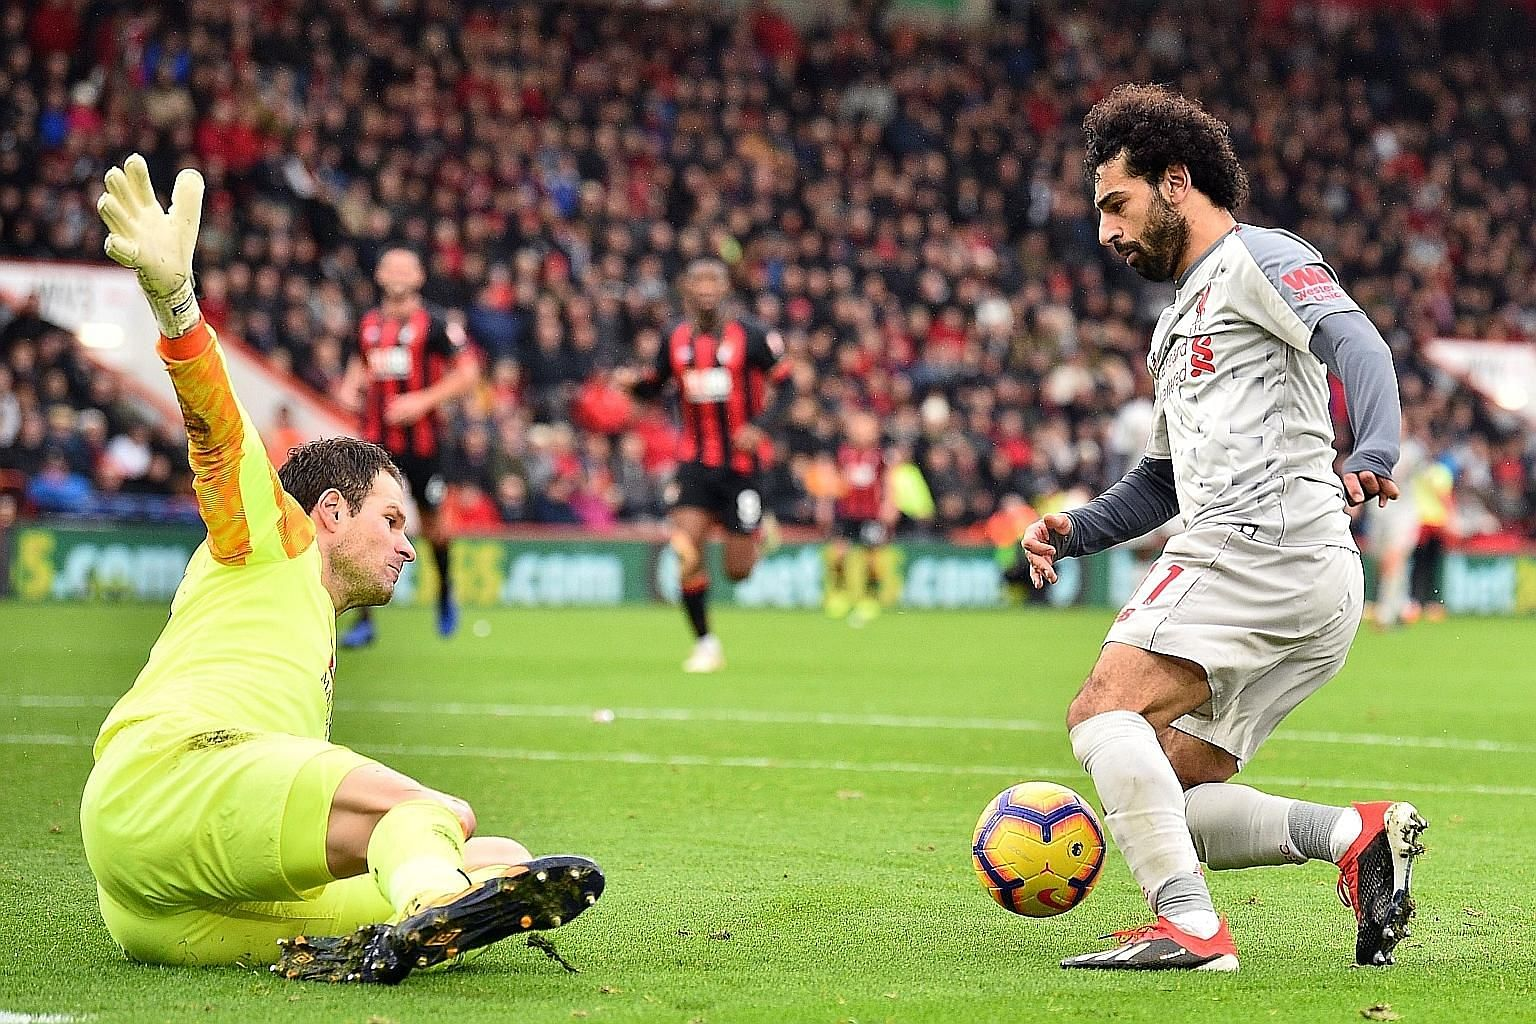 Liverpool forward Mohamed Salah rounding Bournemouth goalkeeper Asmir Begovic before scoring his third goal in the Reds' 4-0 away victory yesterday. The hat-trick took his tally to 10 league goals this season.